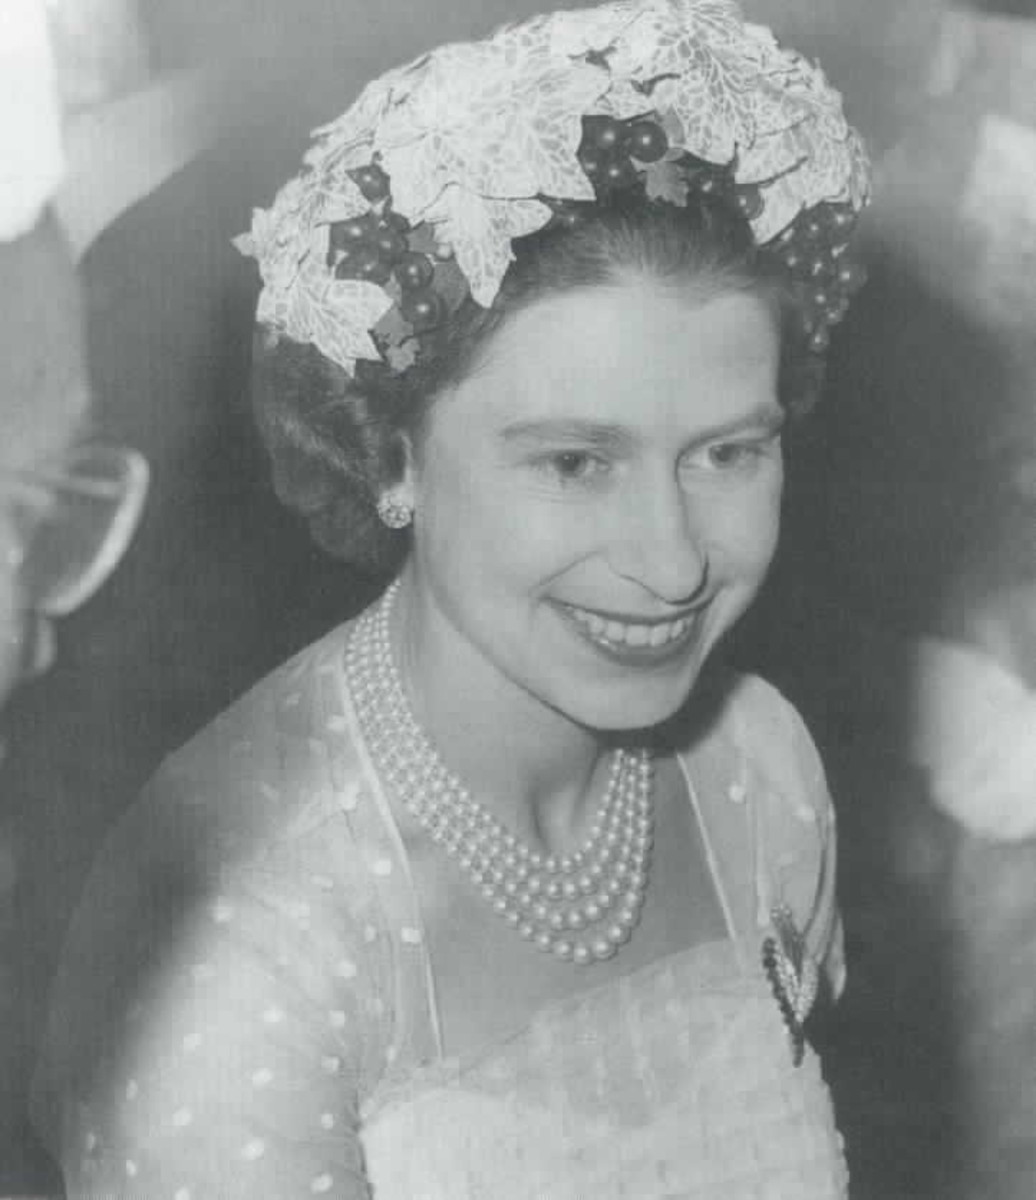 Queen Elizabeth, as a young Queen, loved her pearls.